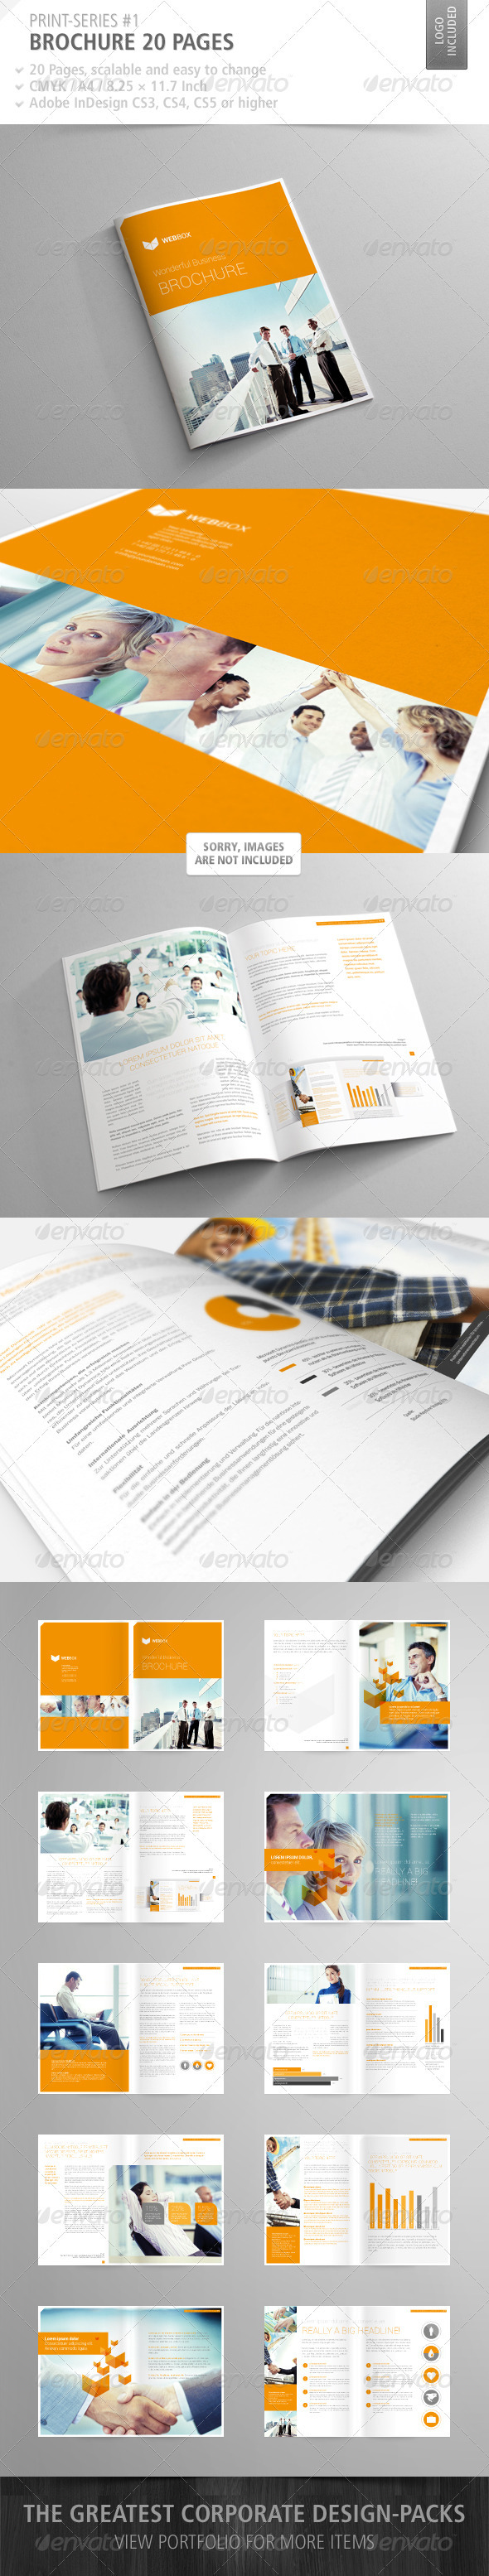 GraphicRiver Brochure 20 Pages Print-Series #1 2393281